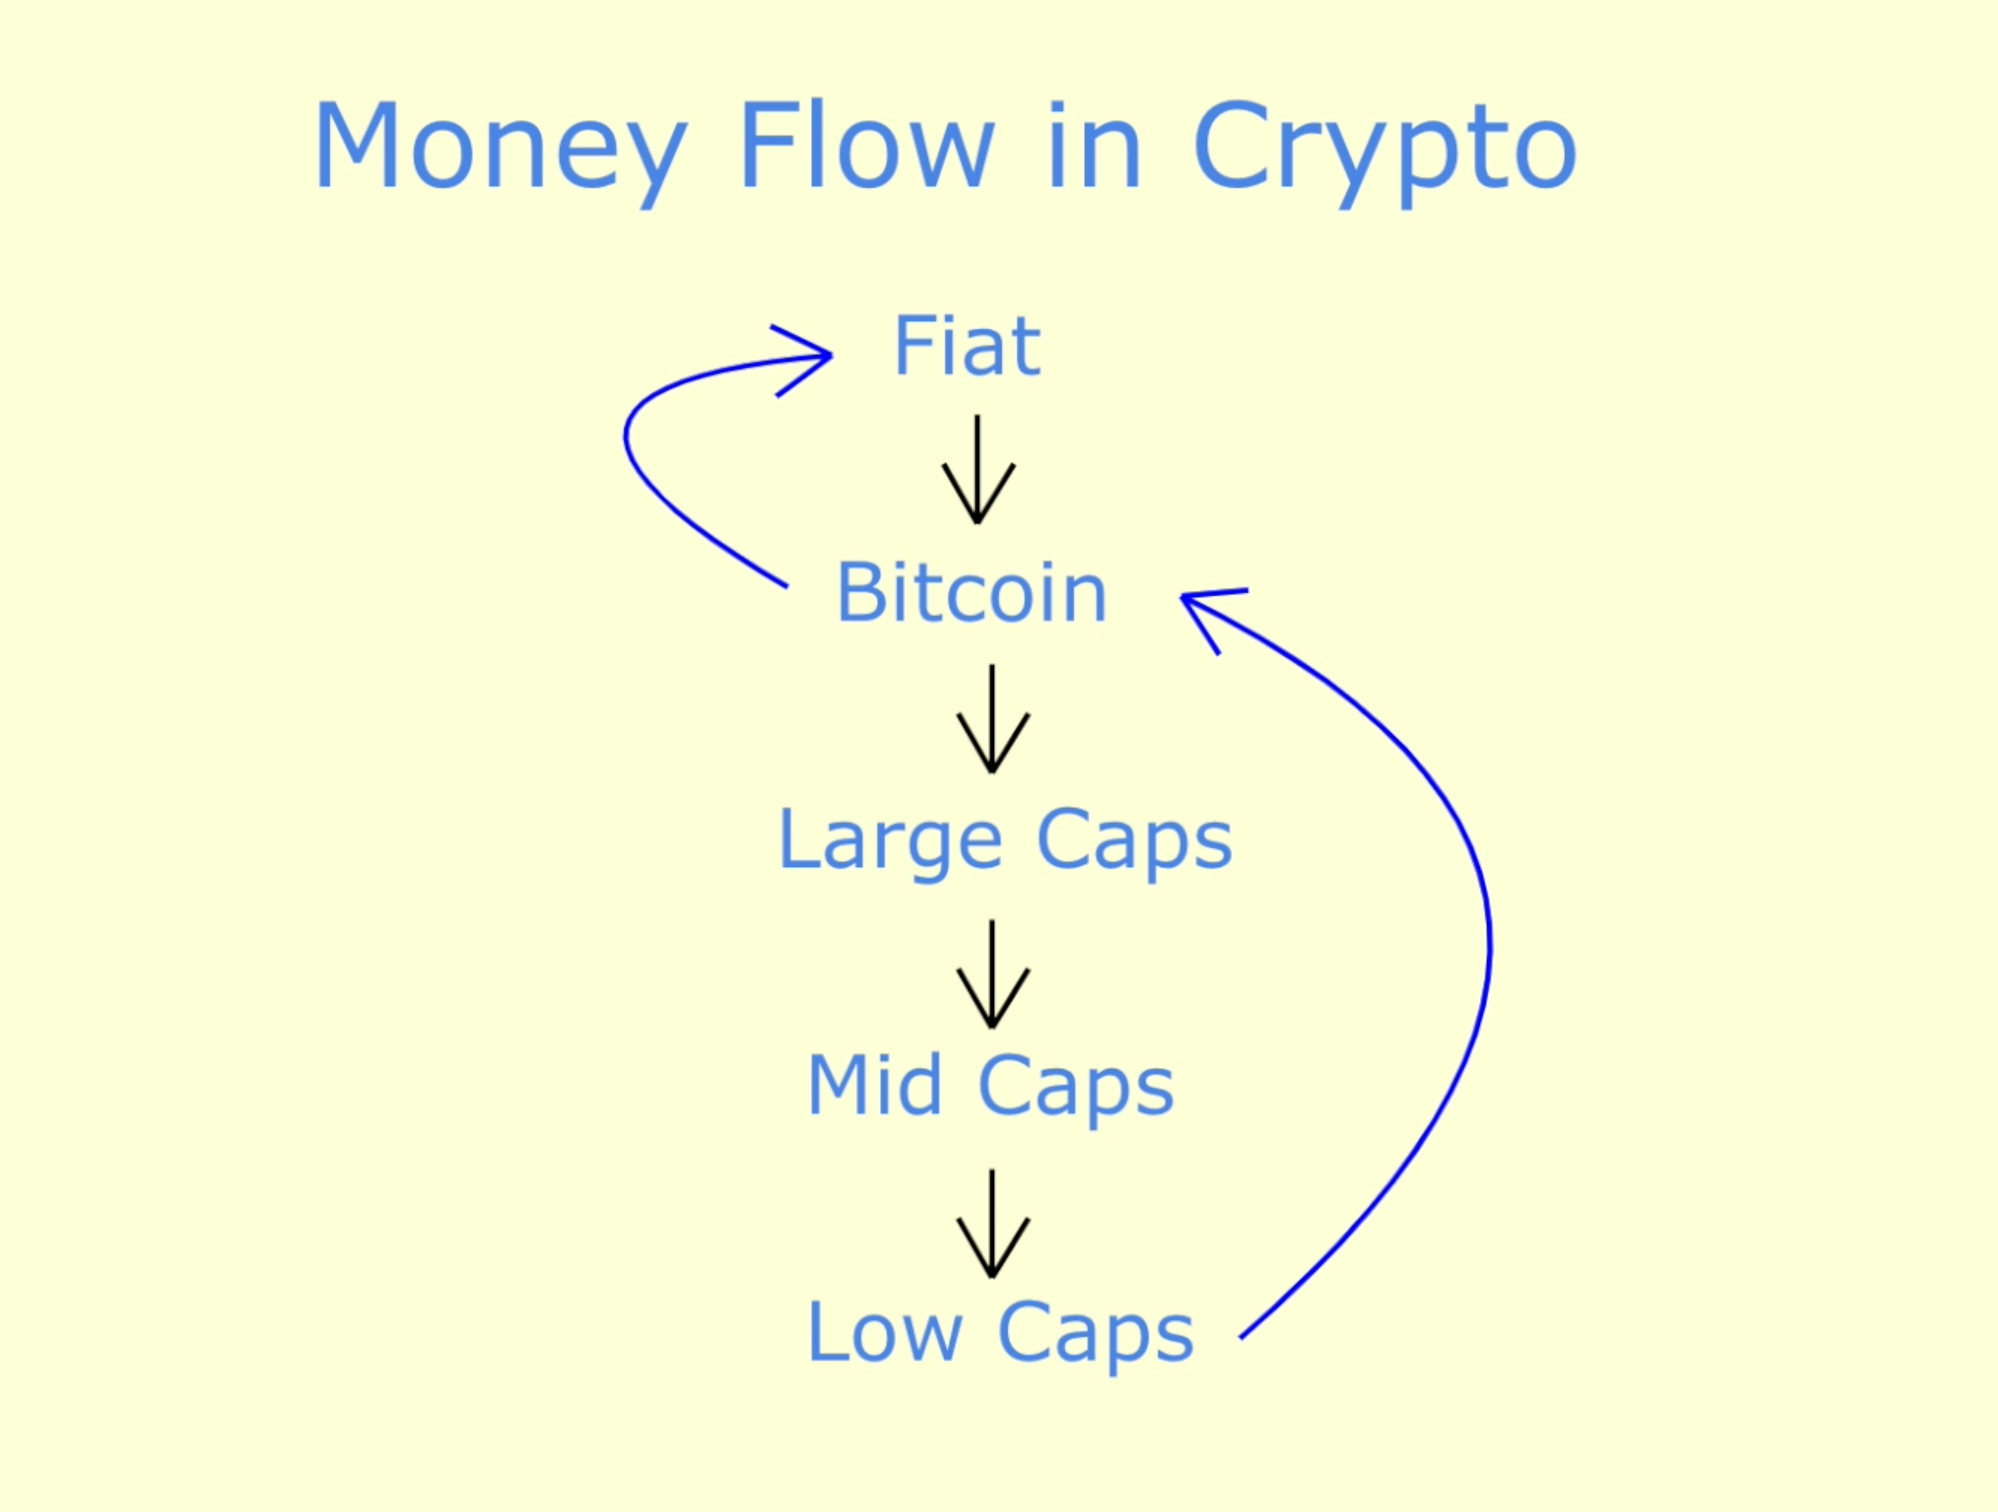 /the-2020-crypto-money-flow-cycle-ht1b3eaj feature image